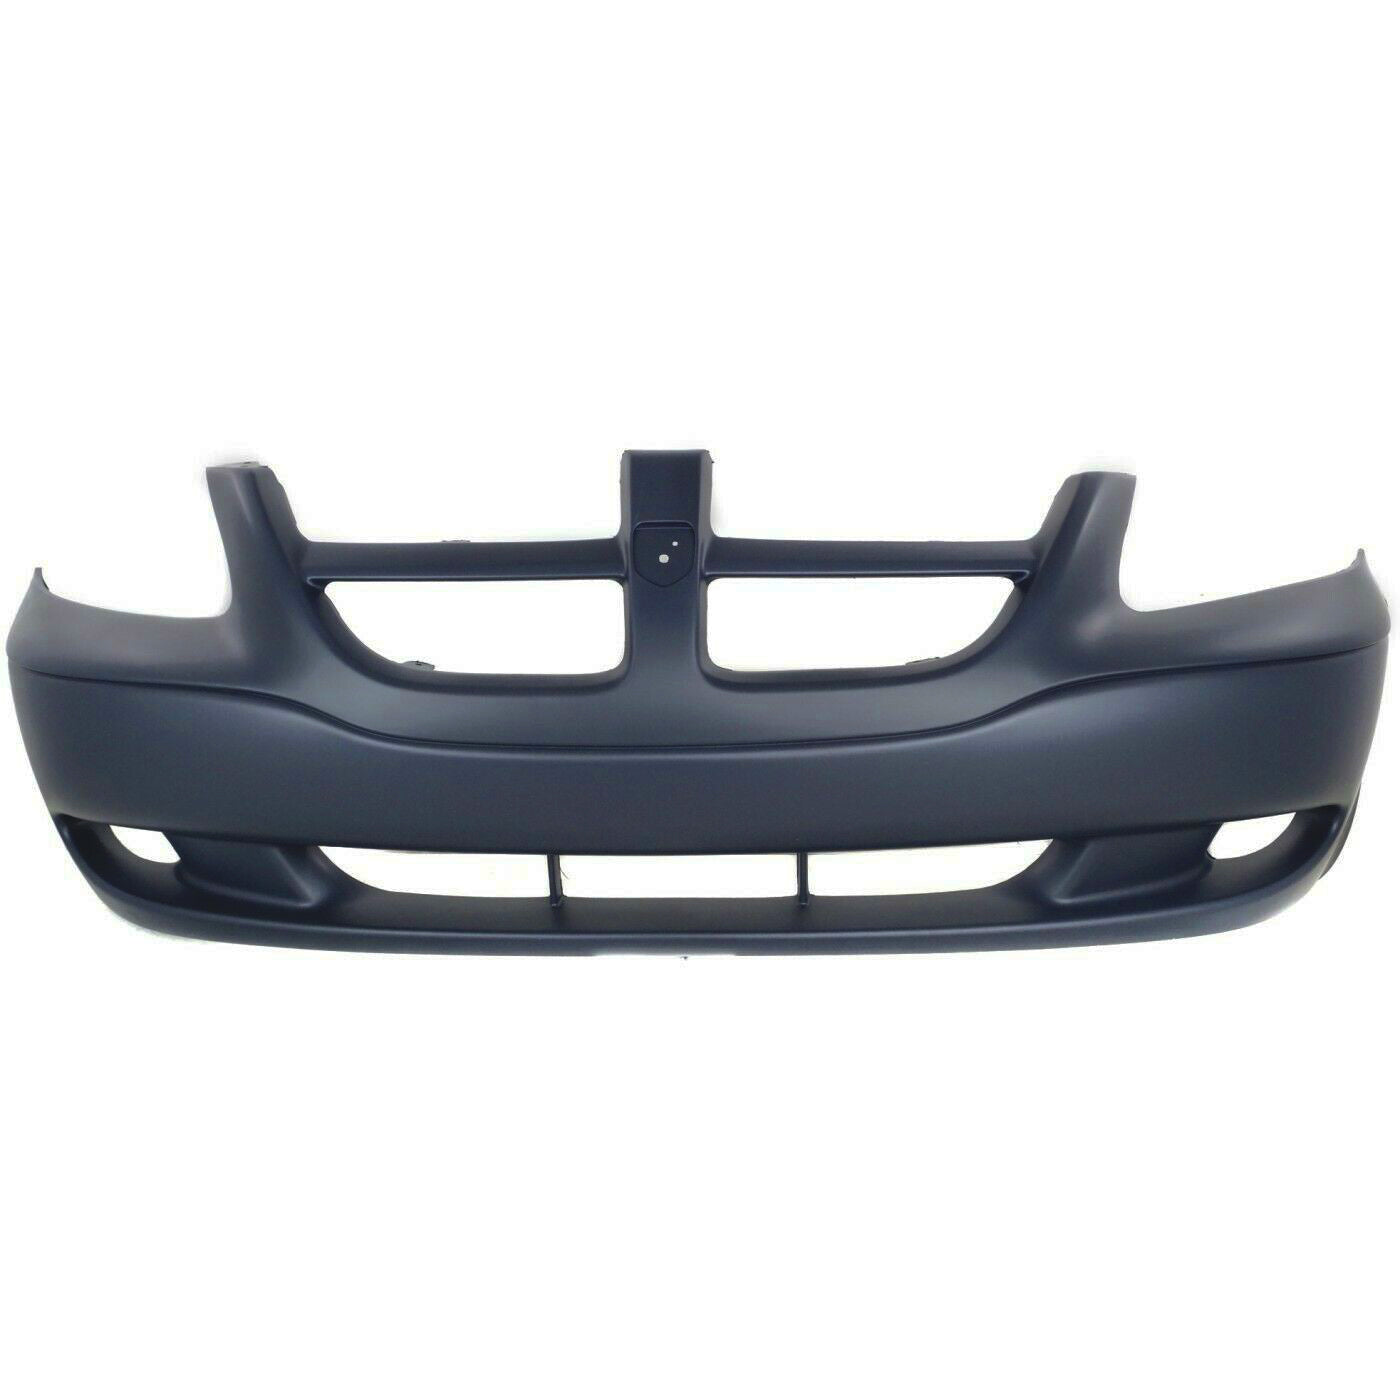 2001-2004 Dodge Caravan (Base/Sport/Grand | W/O Fog Light Cutouts) Front Bumper